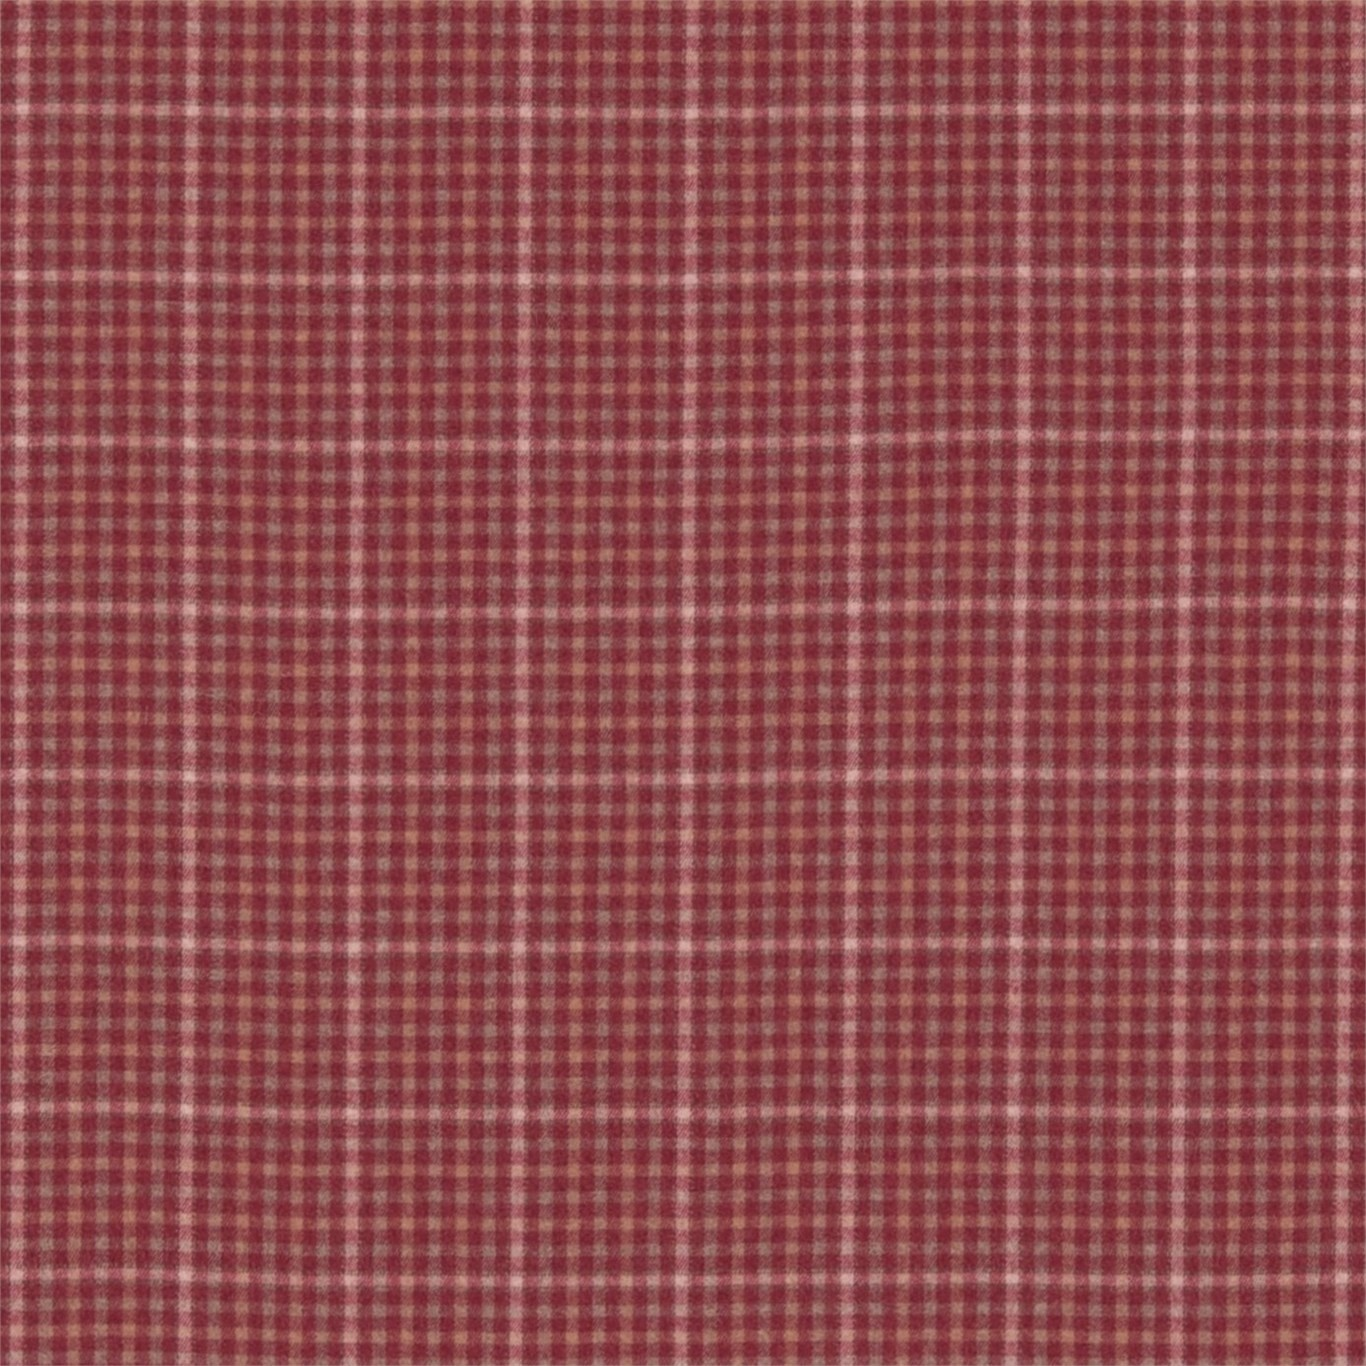 Image of Sanderson Langtry Cherry/Biscuit Fabric 233262